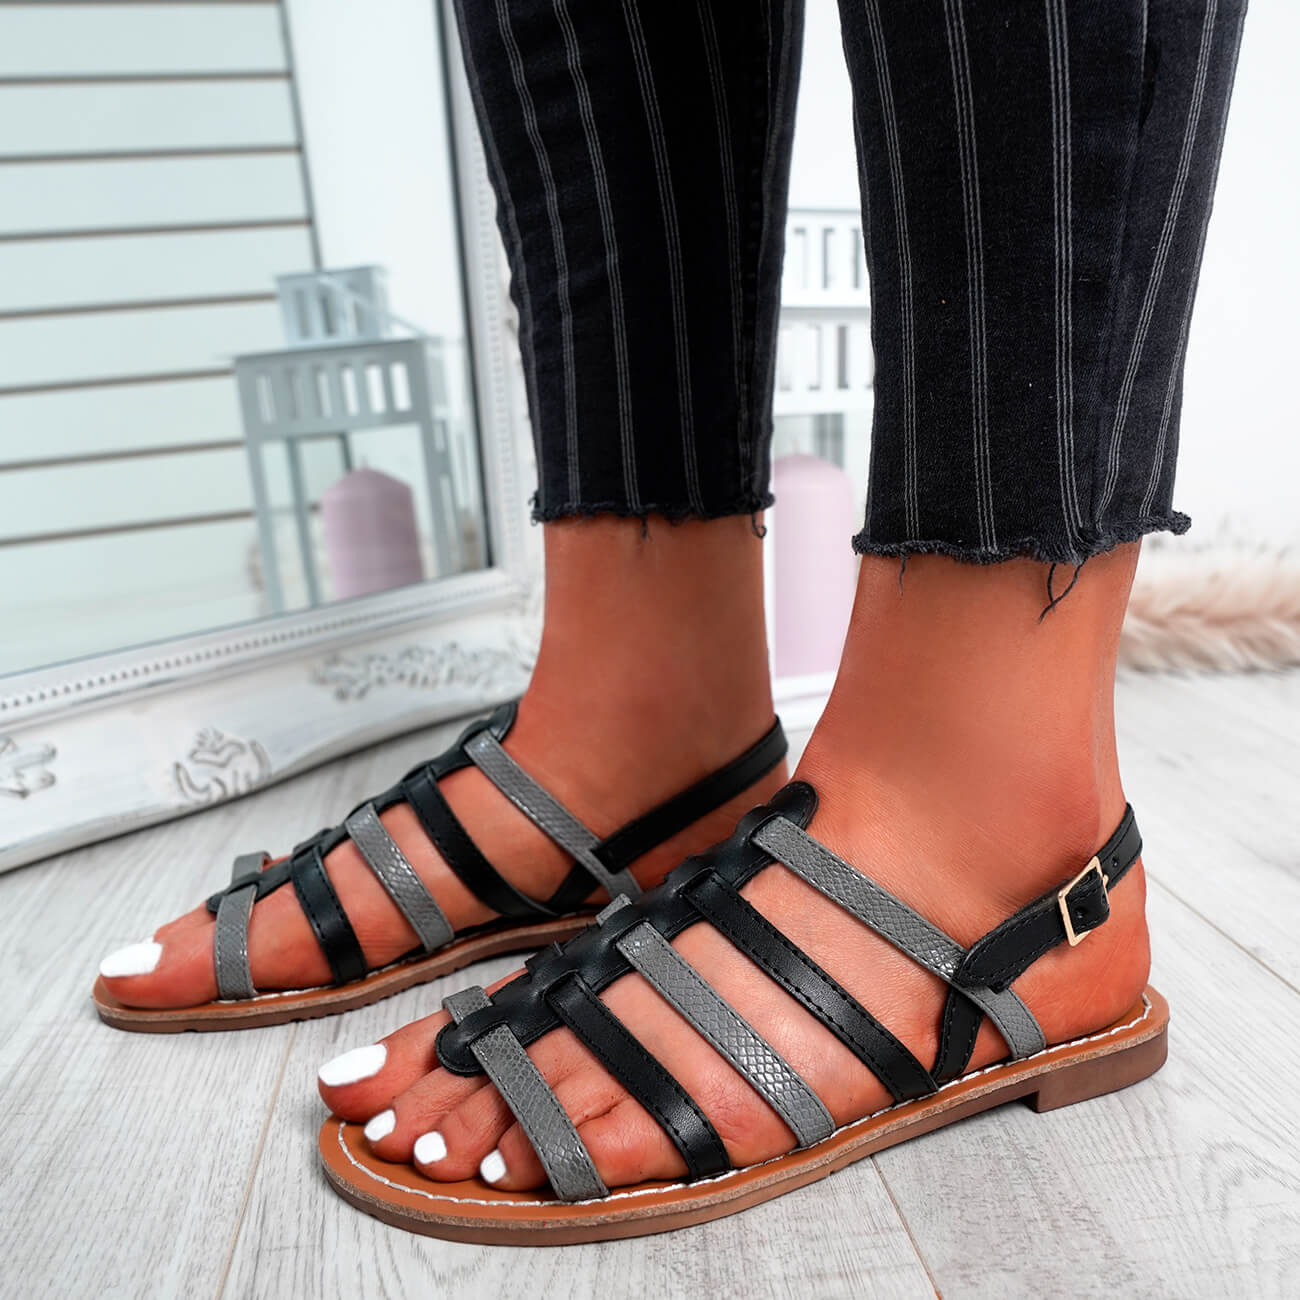 WOMENS-LADIES-BUCKLE-STRAP-FLAT-SUMMER-SANDALS-CASUAL-HOLIDAY-COMFY-SHOES-SIZE thumbnail 7